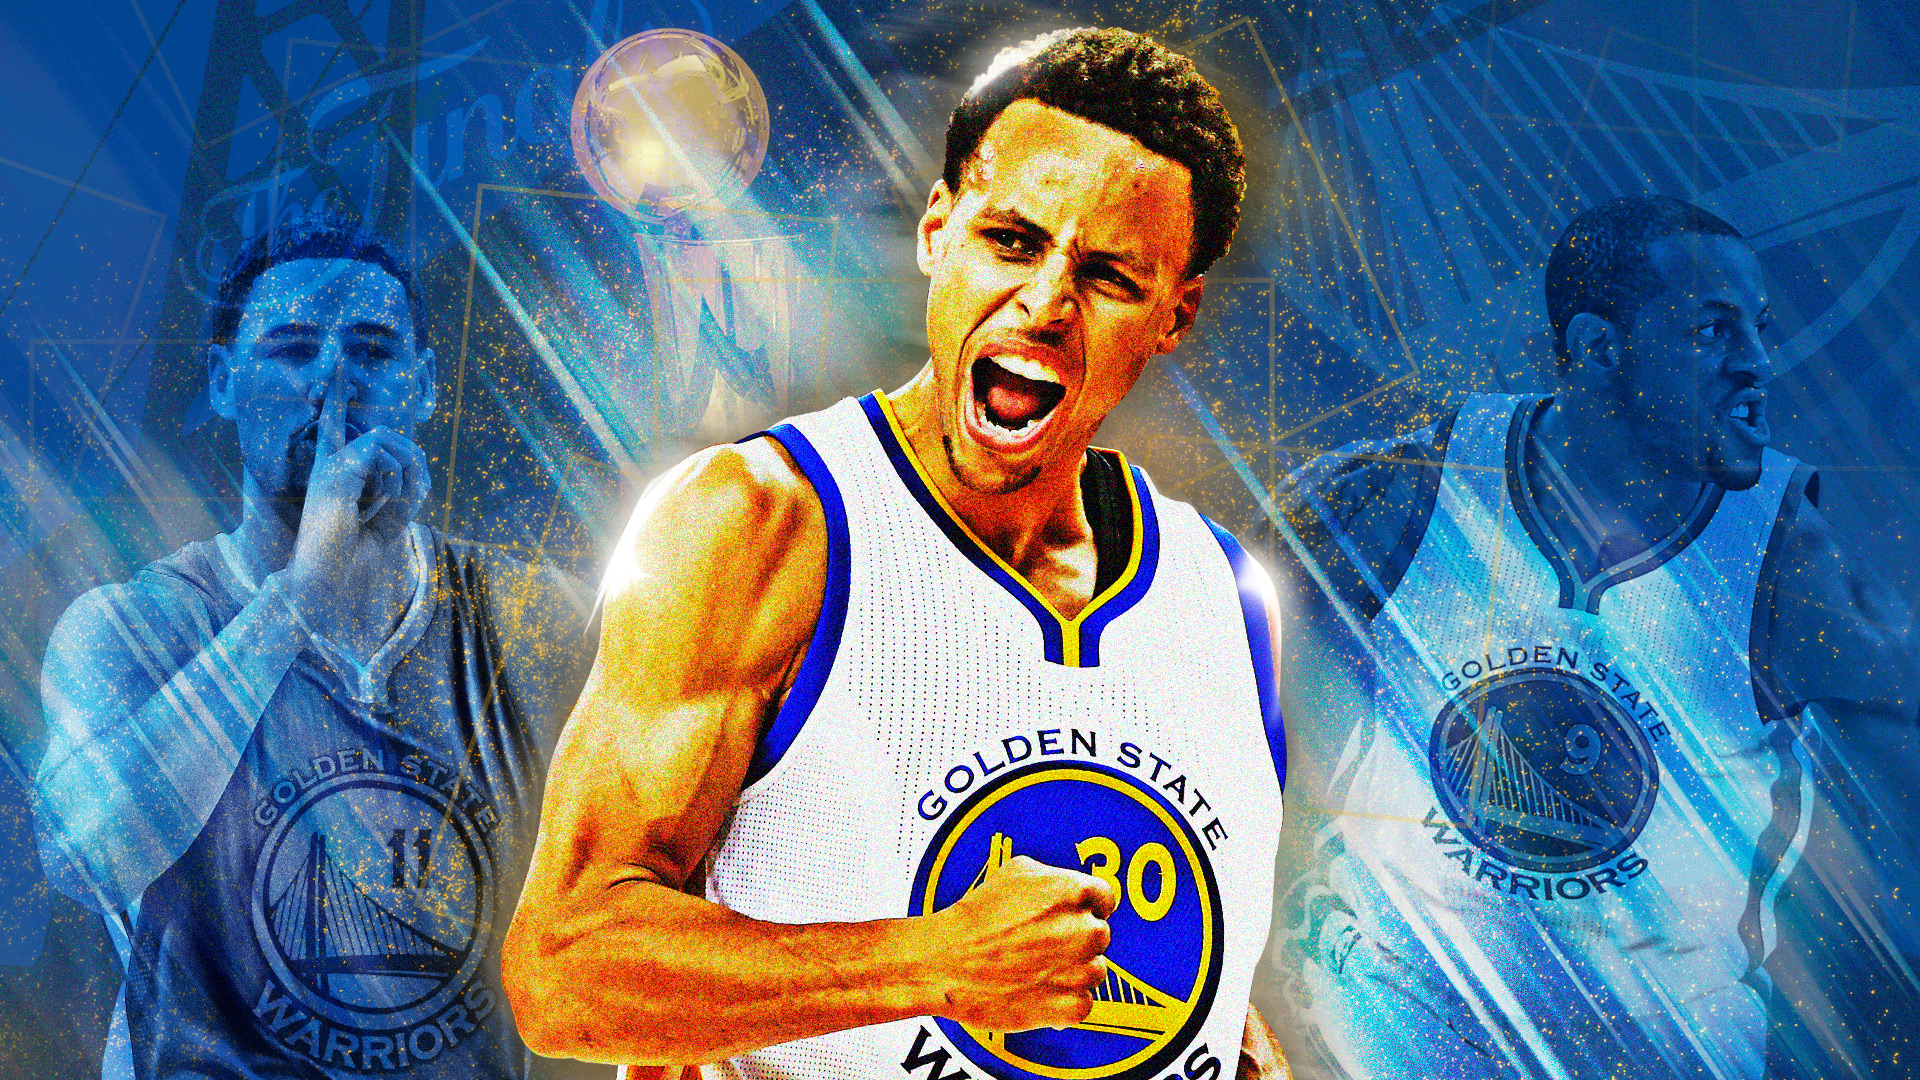 Sport Wallpaper Stephen Curry: The Warriors' Sunday Morning Wakeup